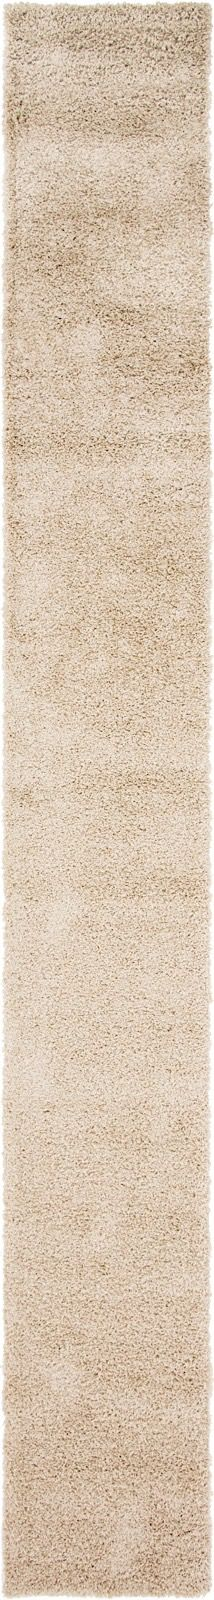 sybil solid/striped area rug collection